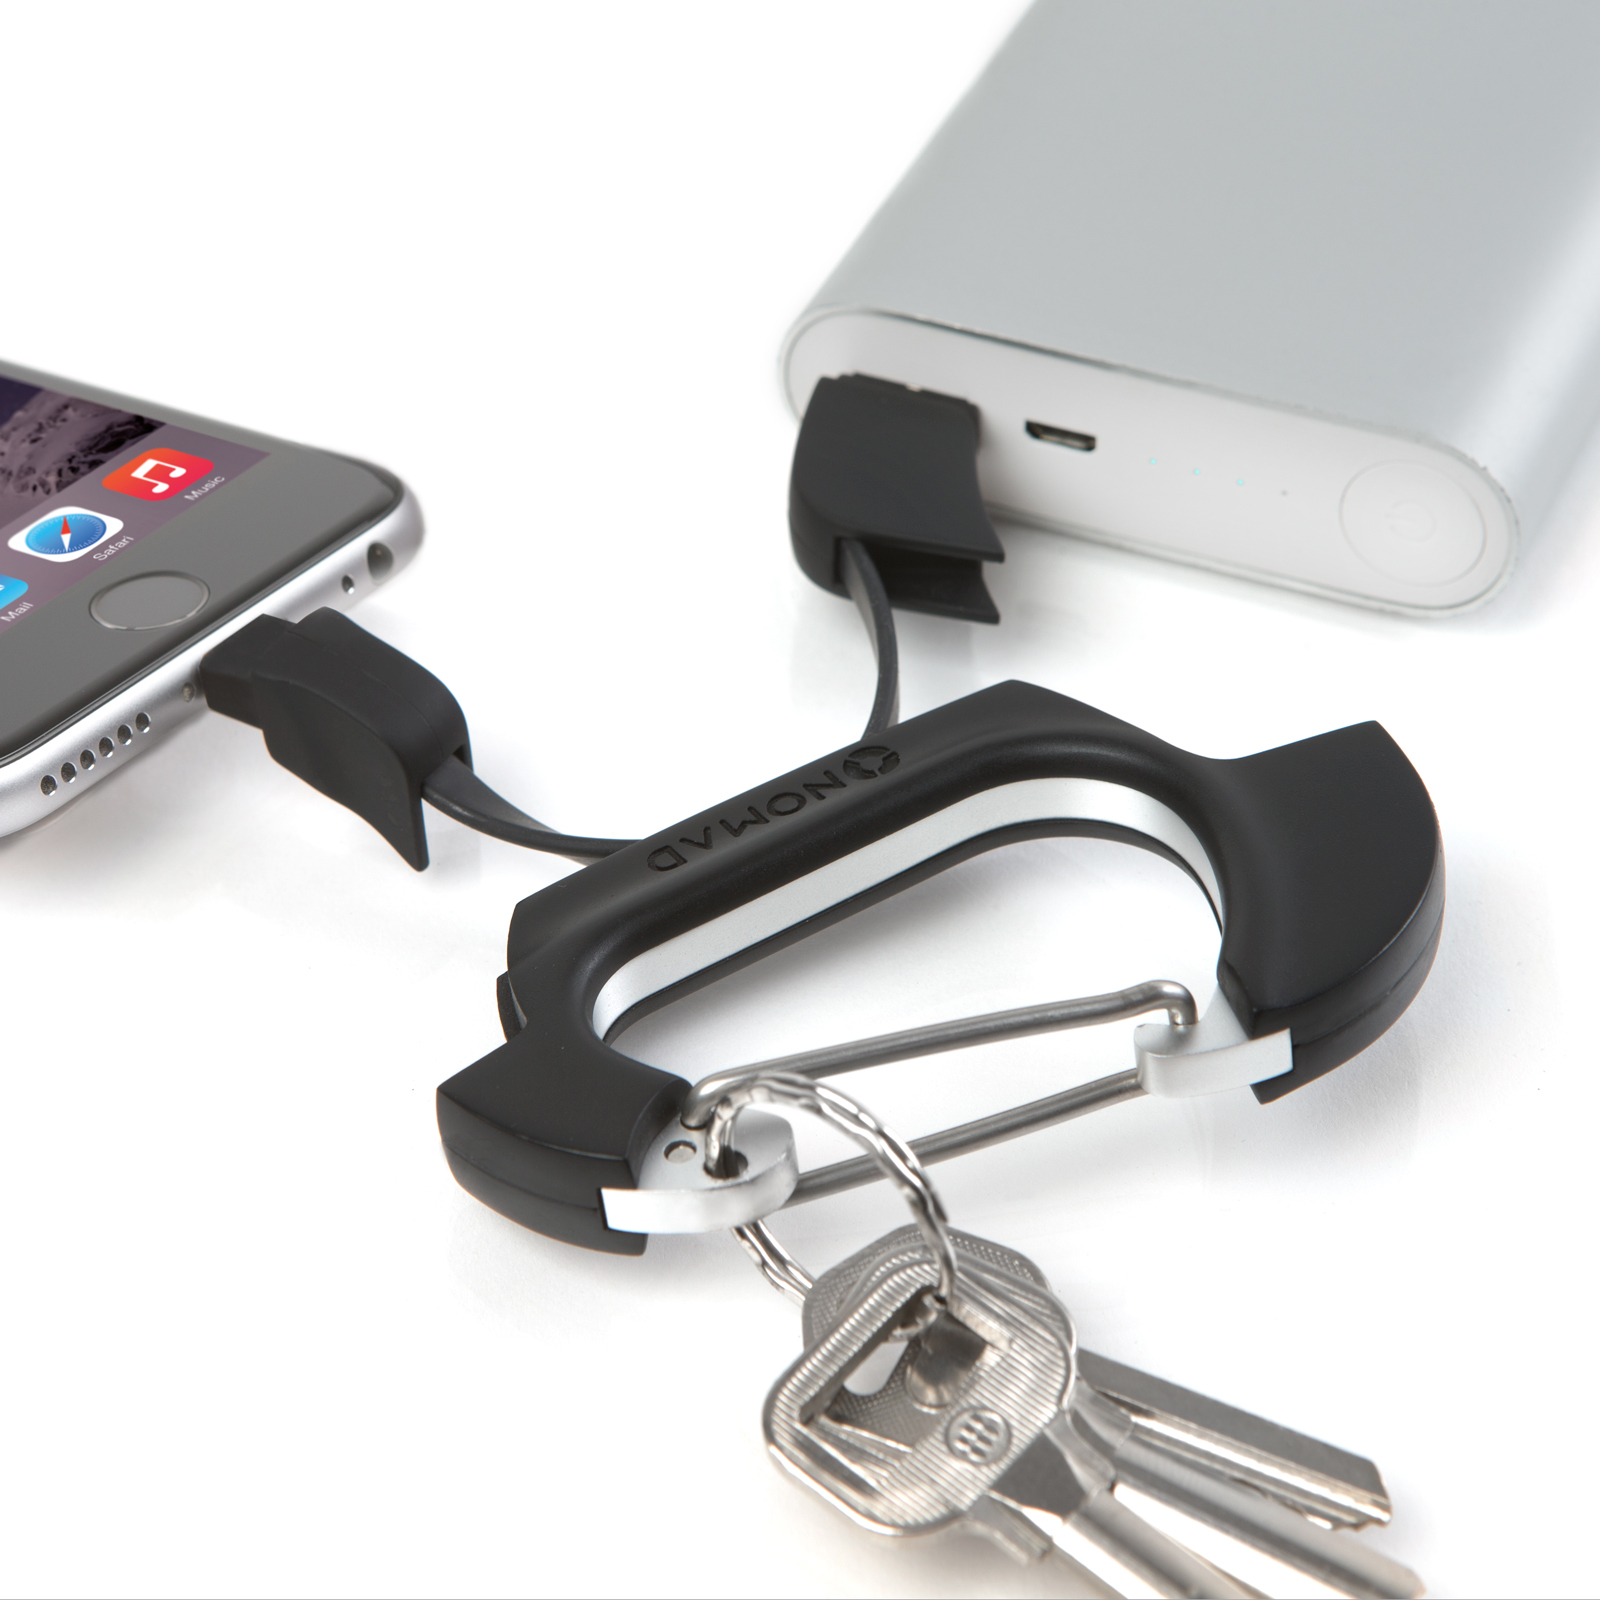 nomad clip carabiner lightning to usb cable